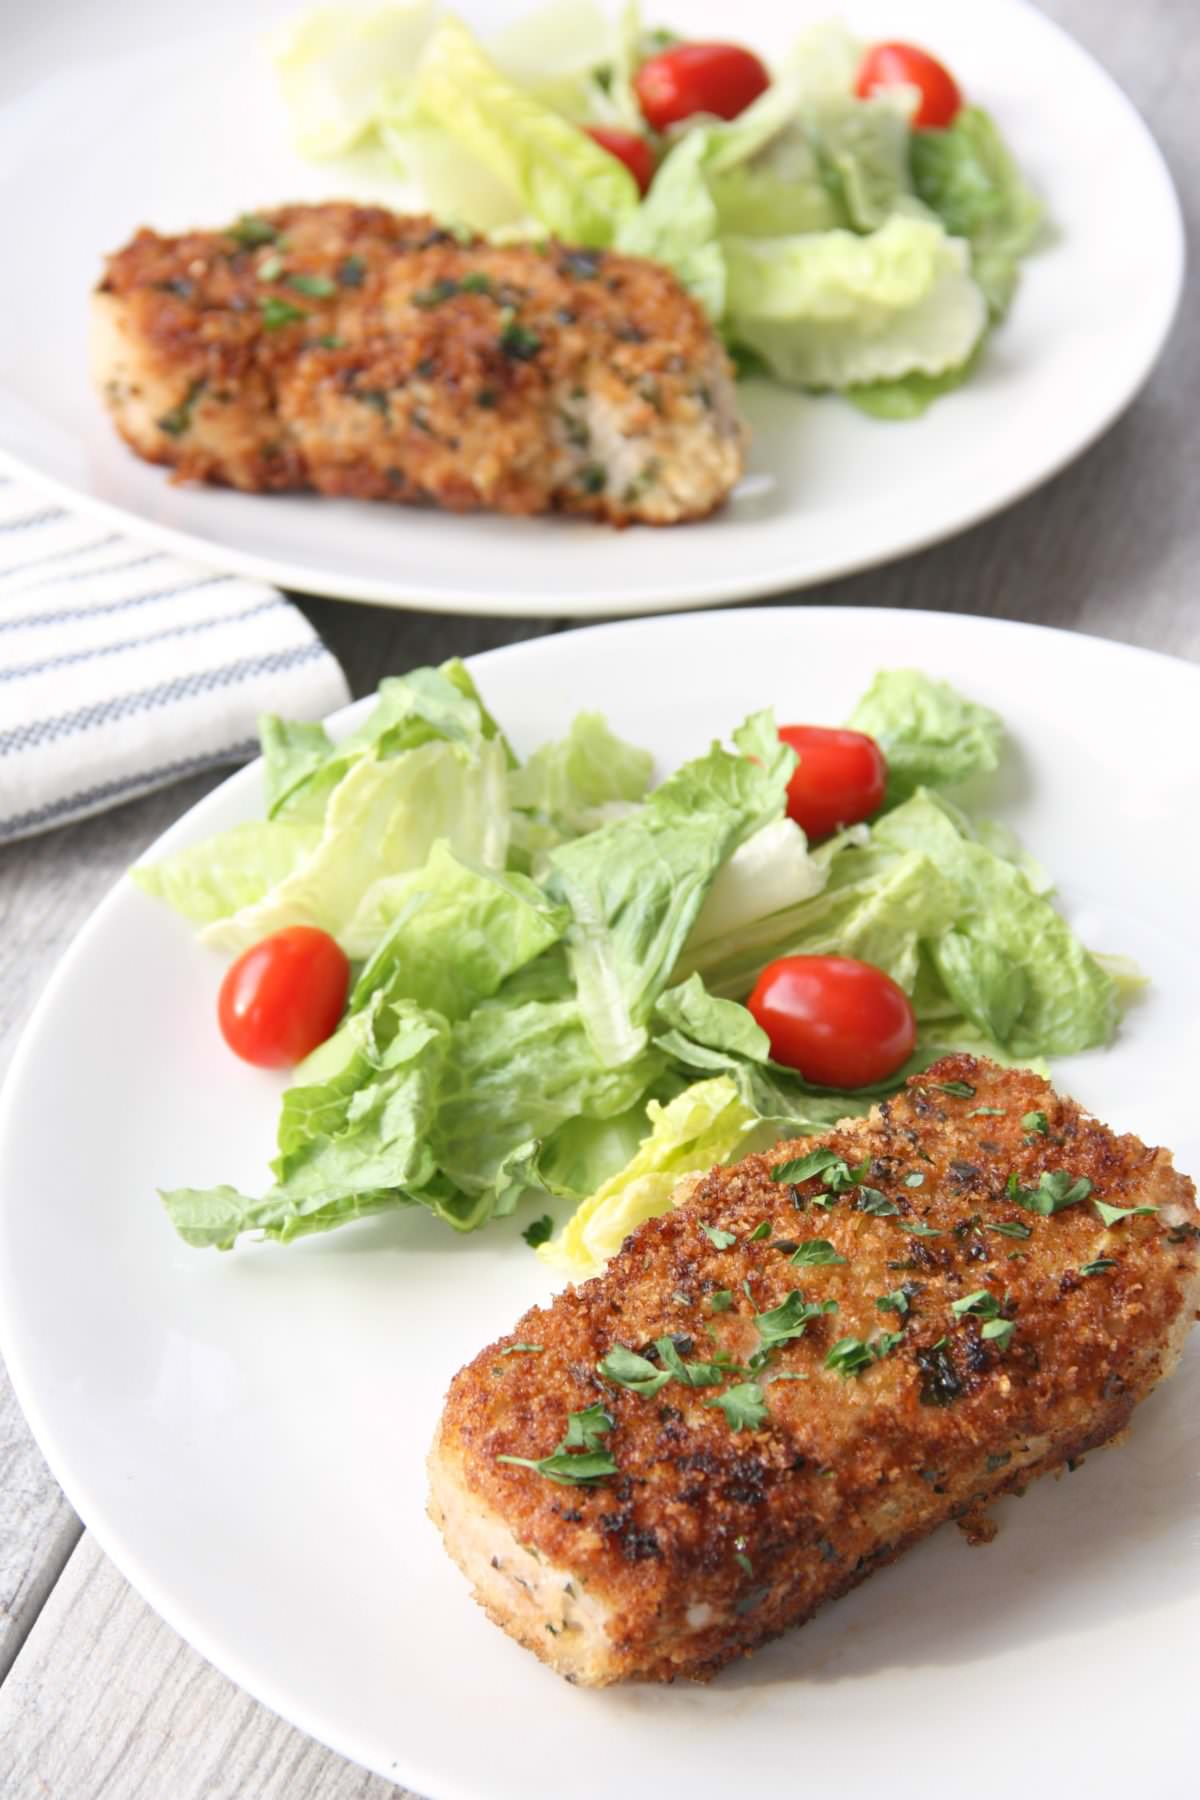 Herb-crusted Pork Chops - My Mommy Style